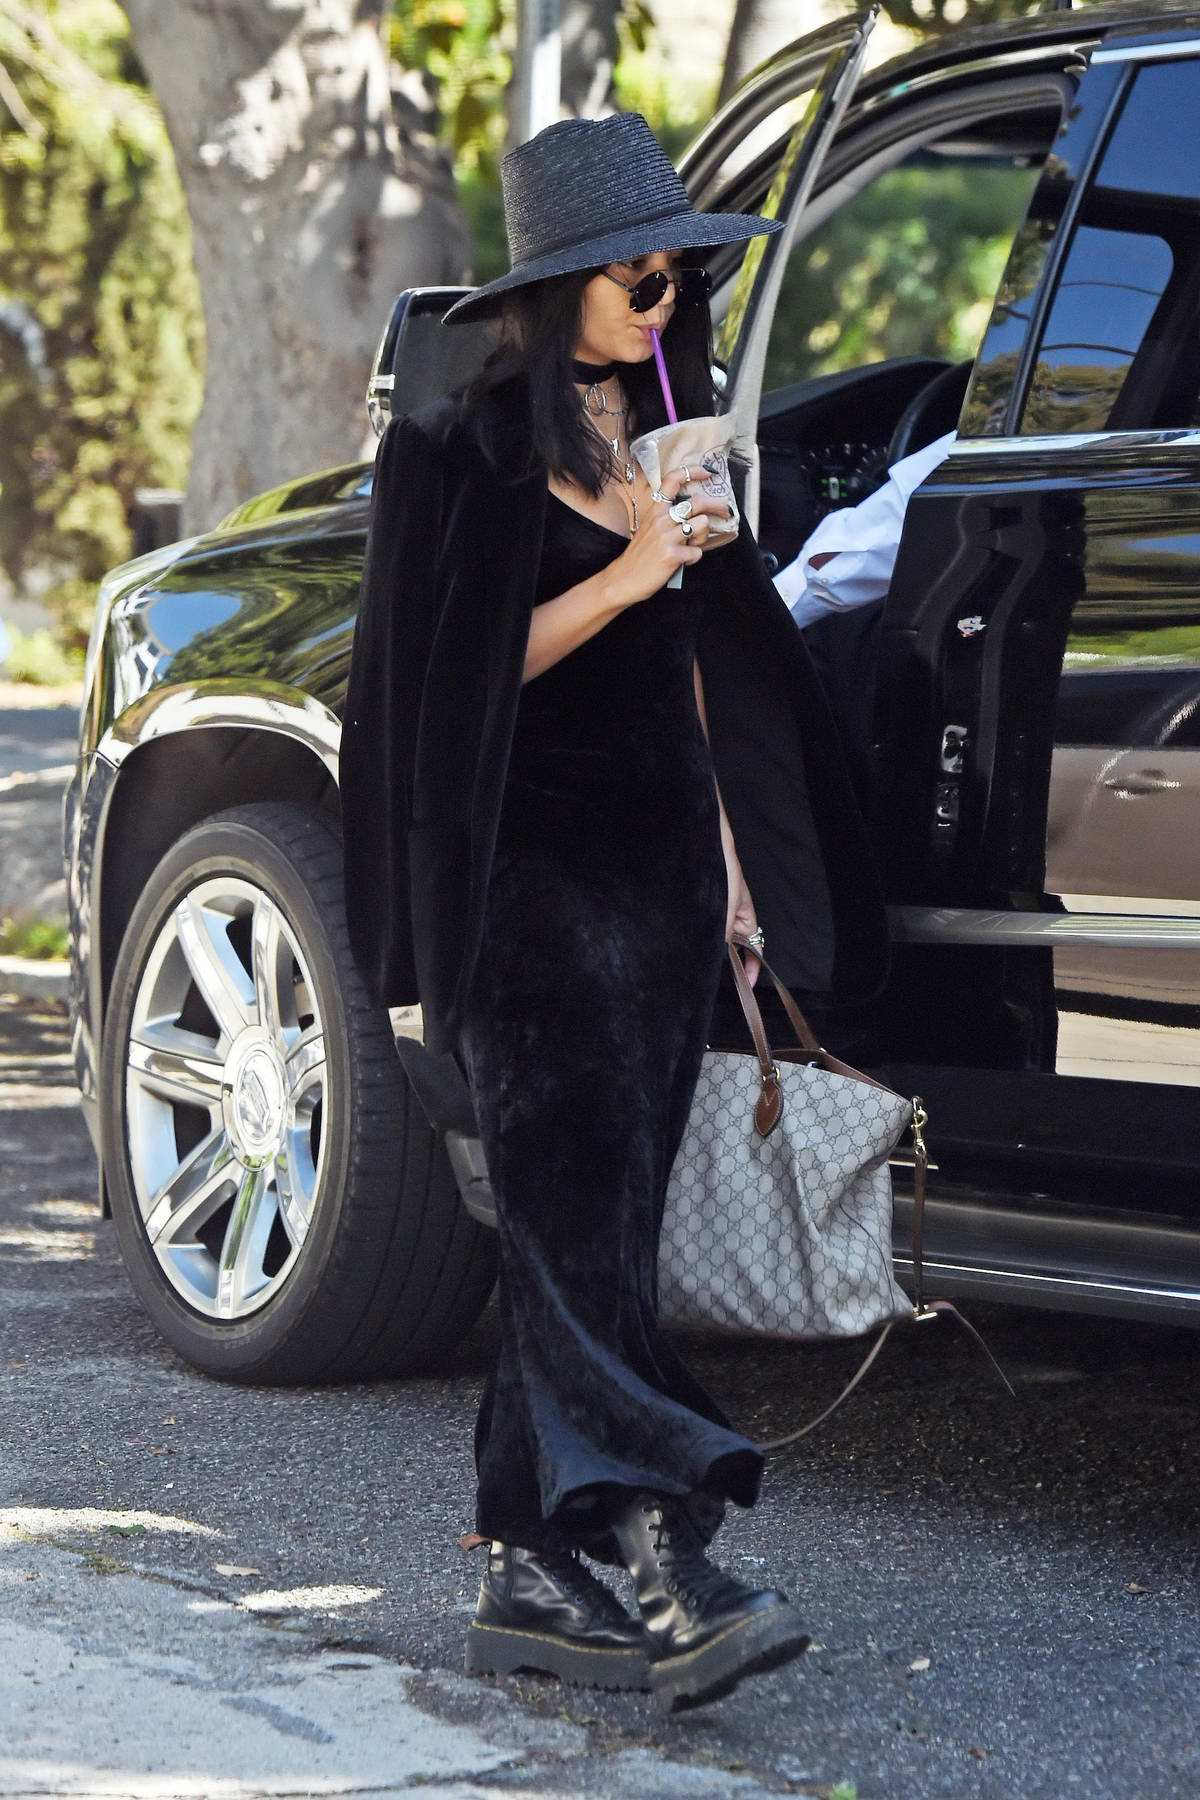 Vanessa Hudgens wore an all black ensemble with a matching hat and boots while out for coffee in Los Angeles